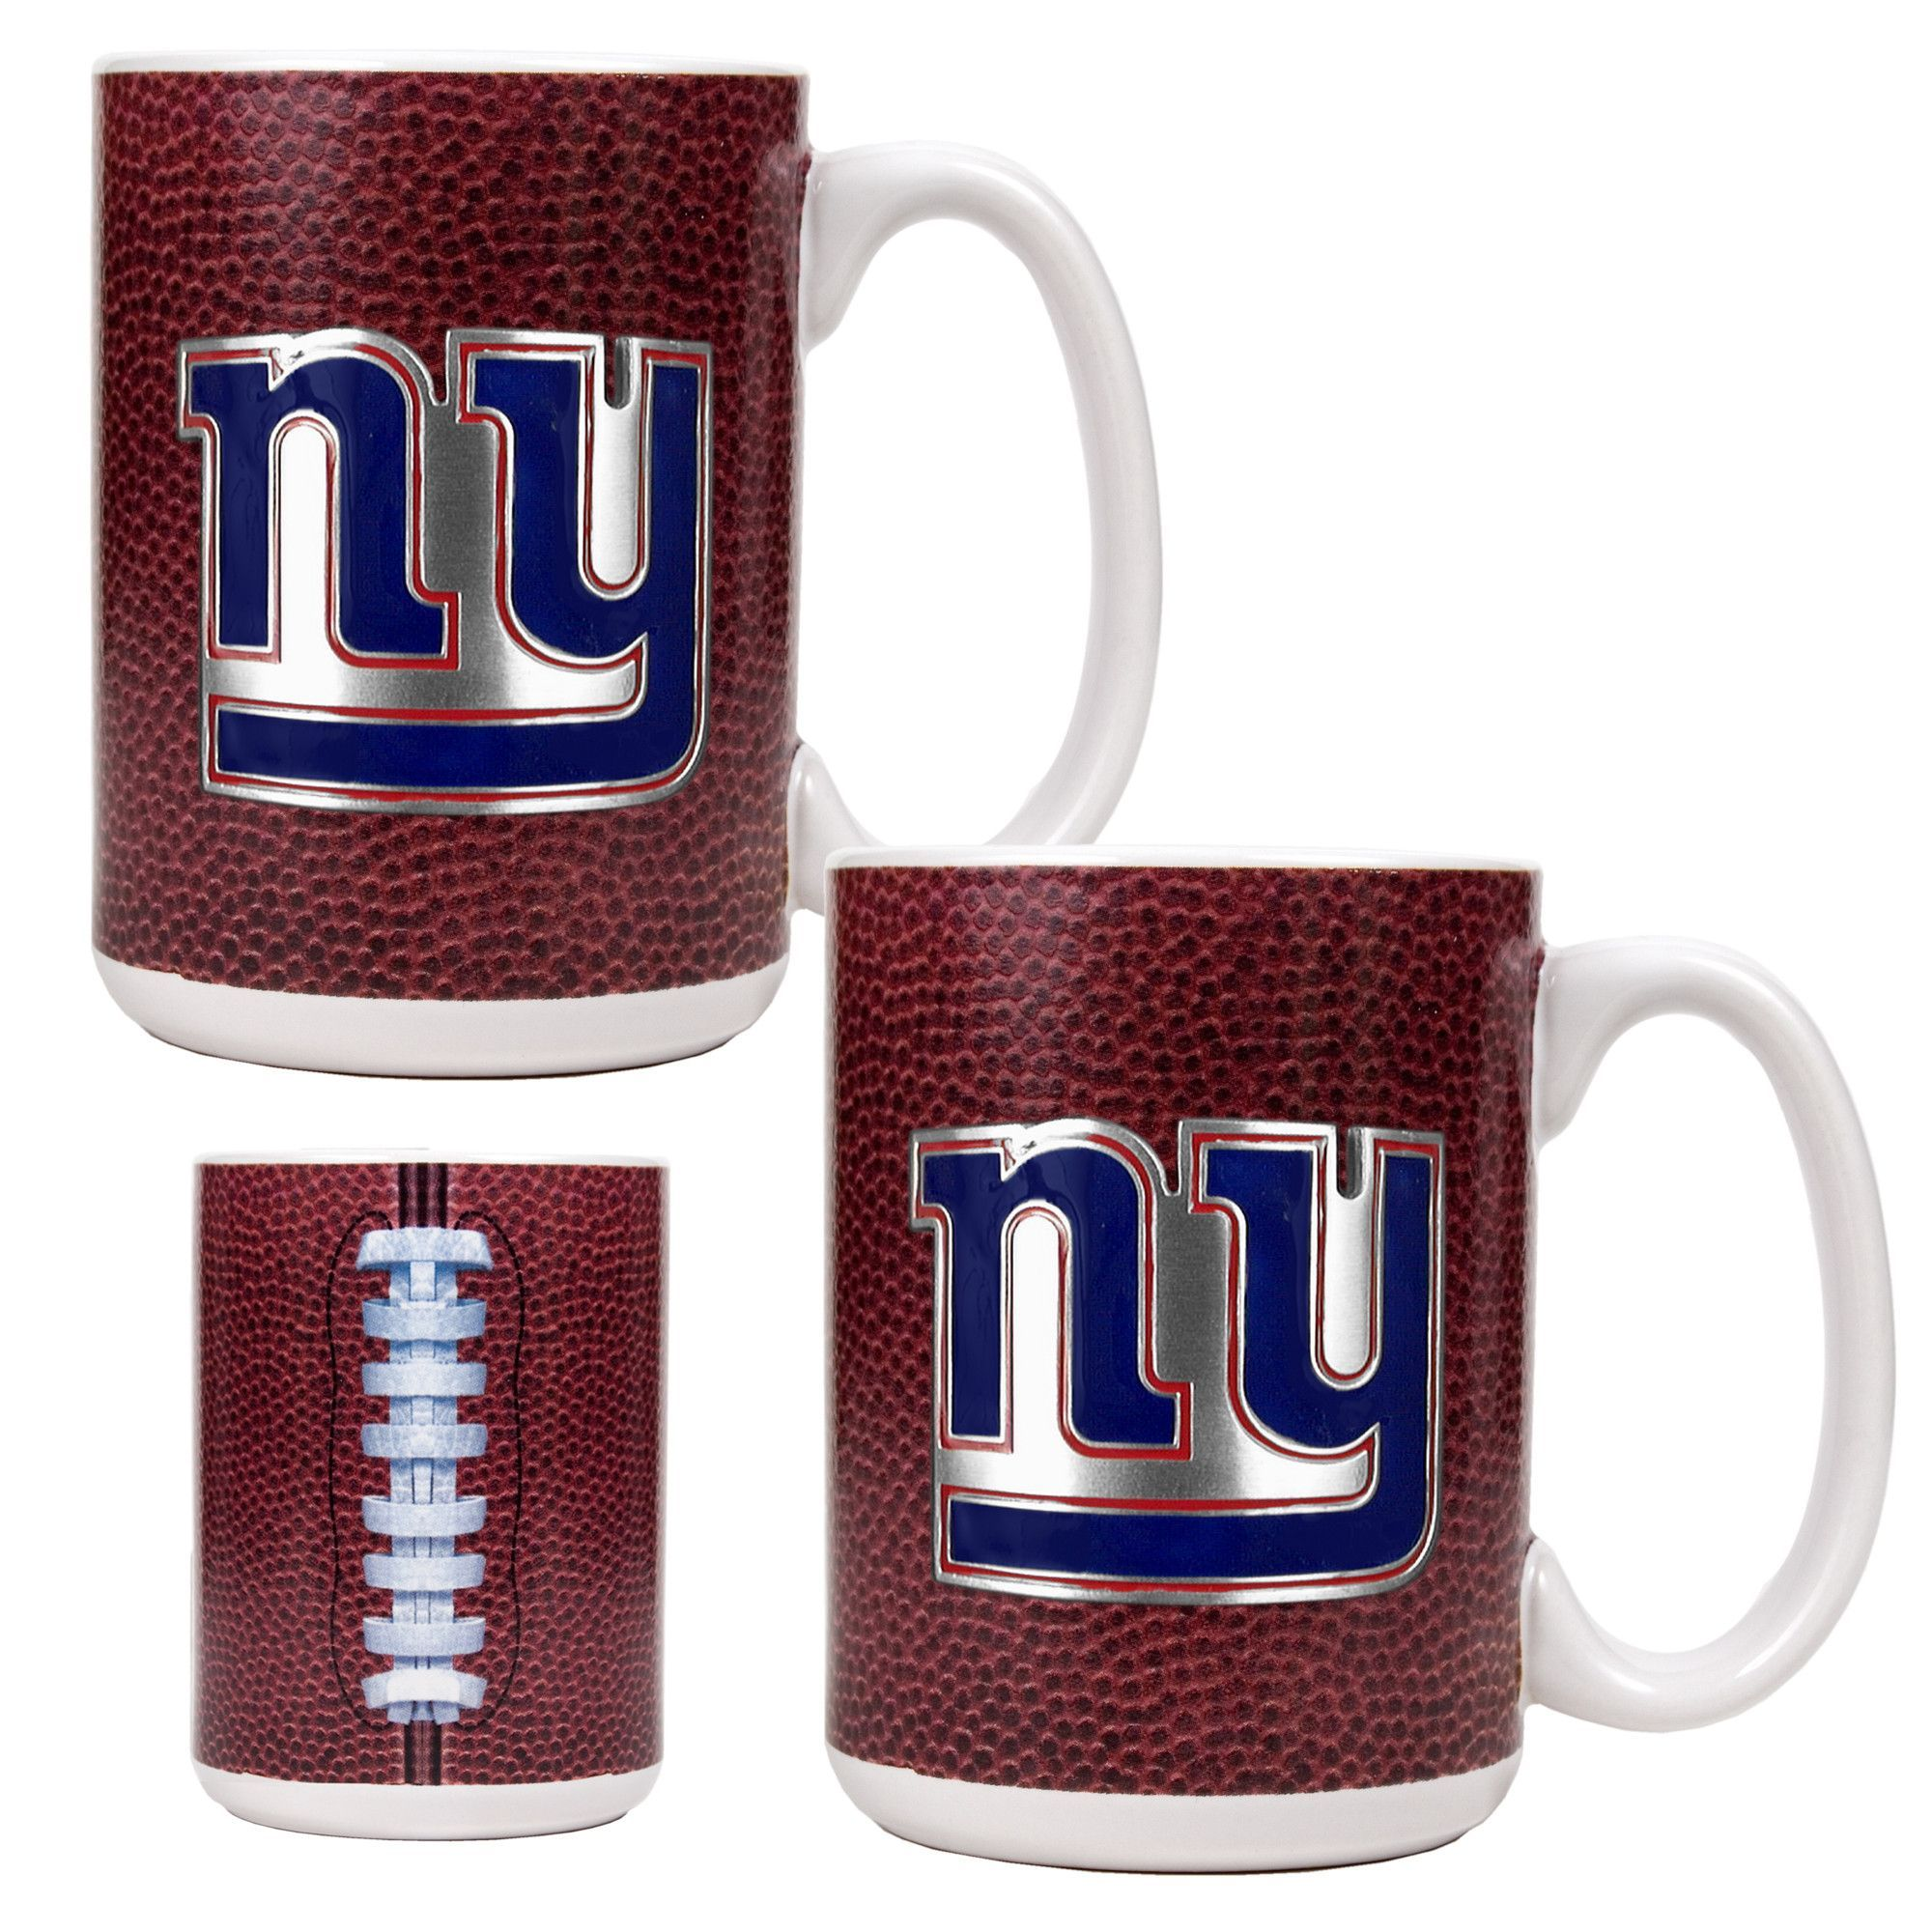 NFL New York Giants 2pc Gameball Coffee Mug Set